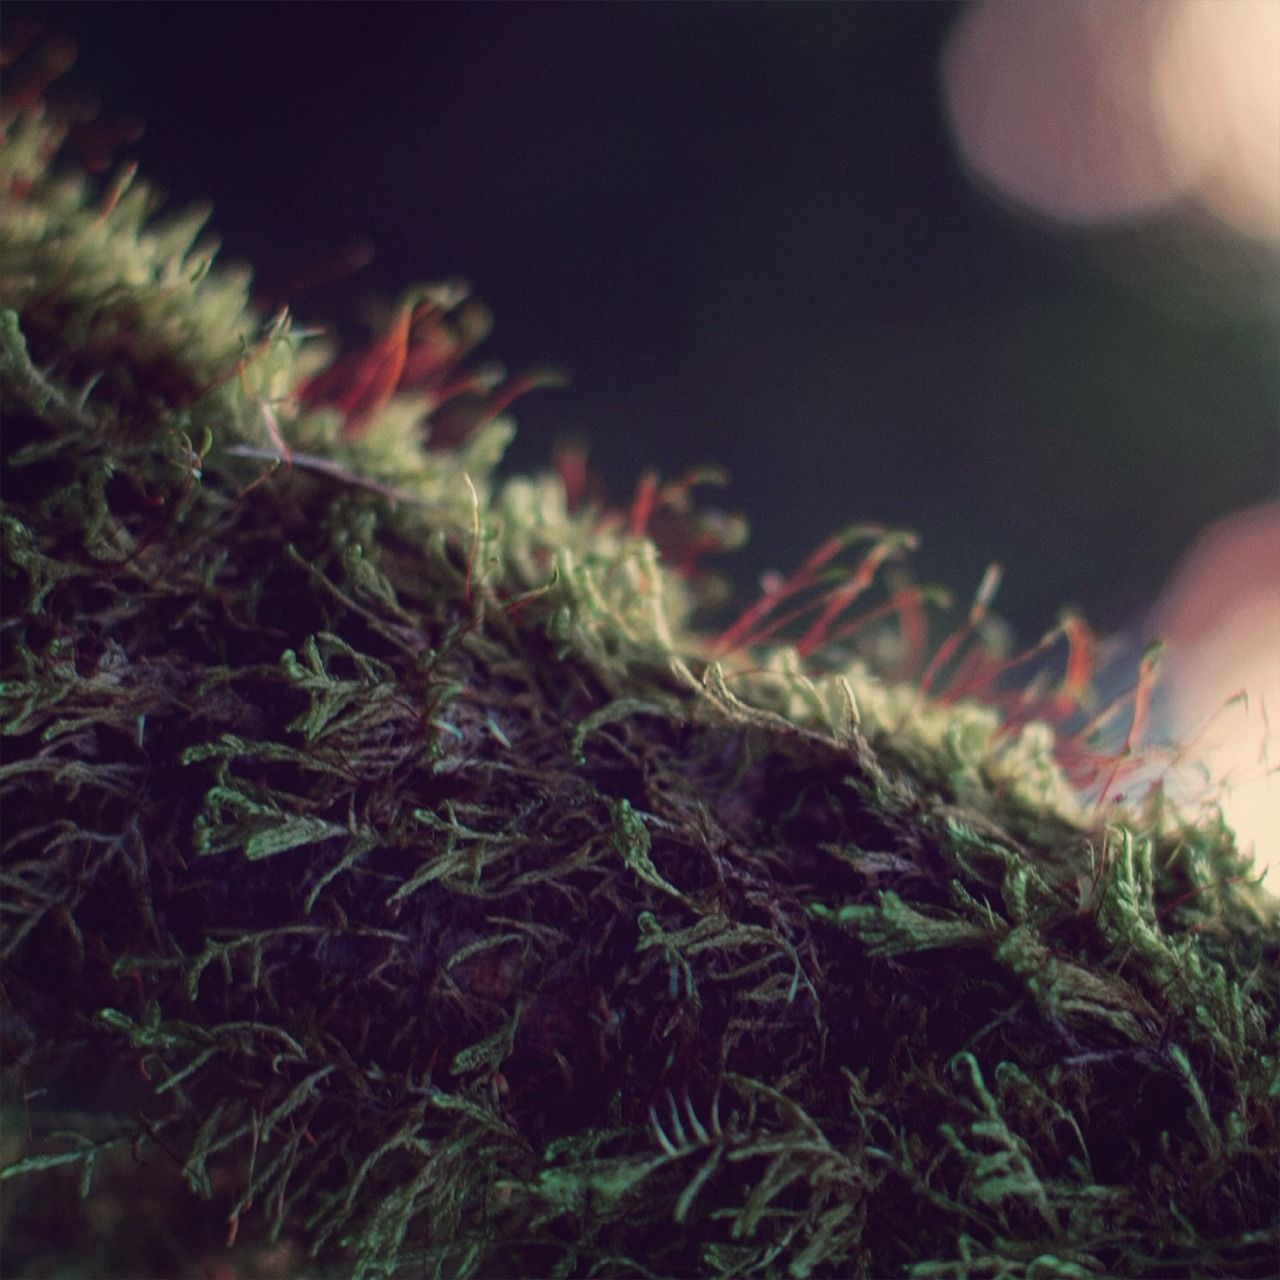 MOSS   by •NOIRERORA• - #macro #moos #moss #natur #nature #noirerora #on #original #photographers #photography #tumblr